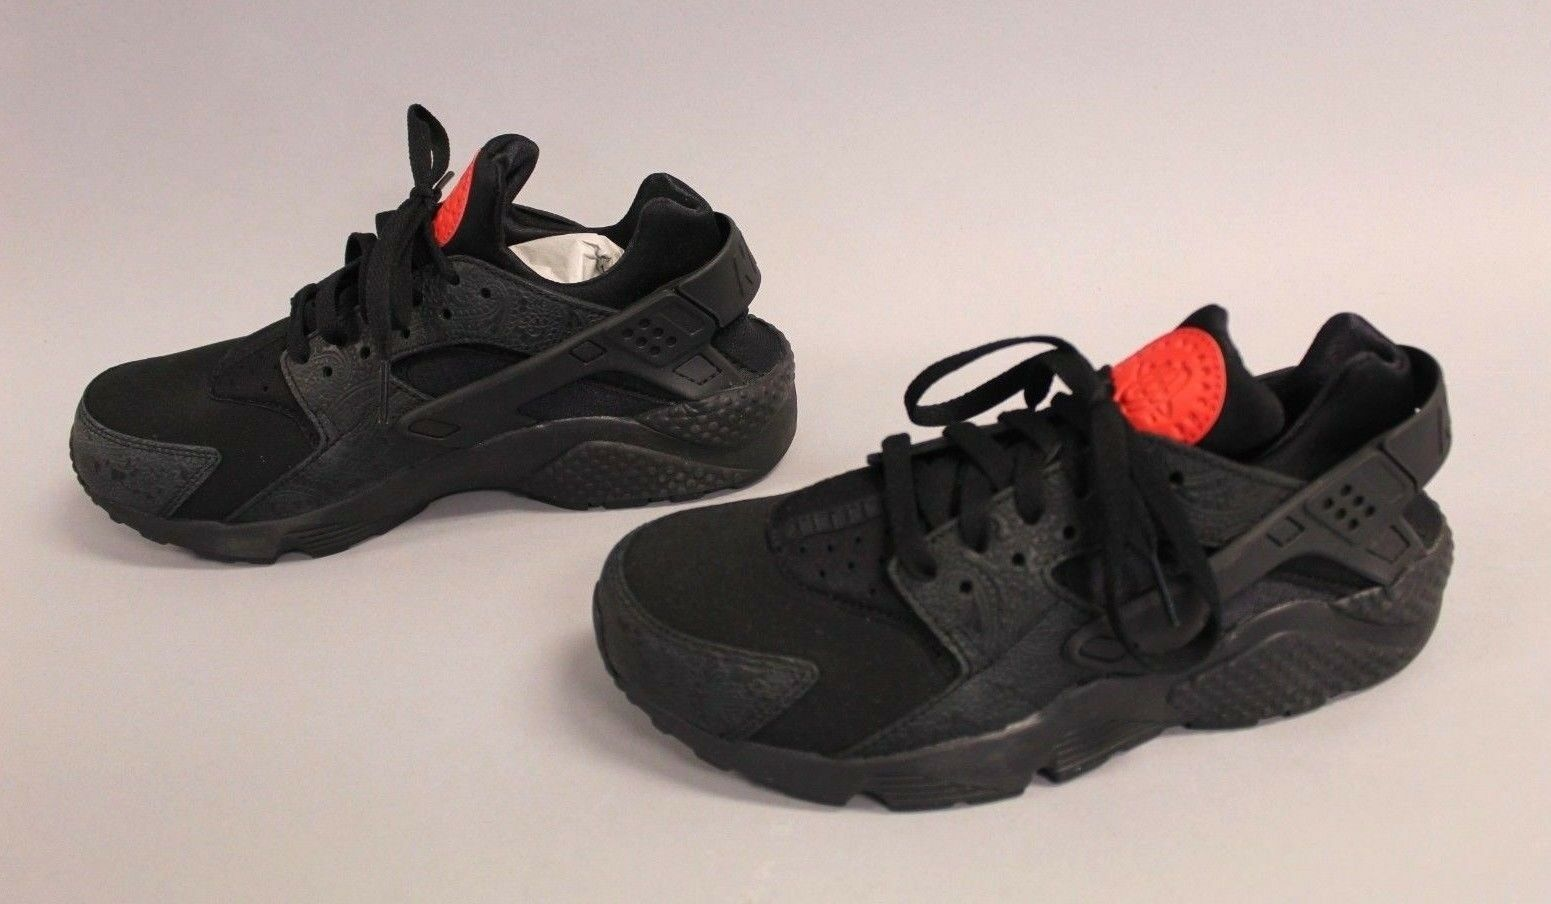 Nike Mens Air Huarache Run F Russian Floral shoes HD3 Black AO3153-001 Size US 8